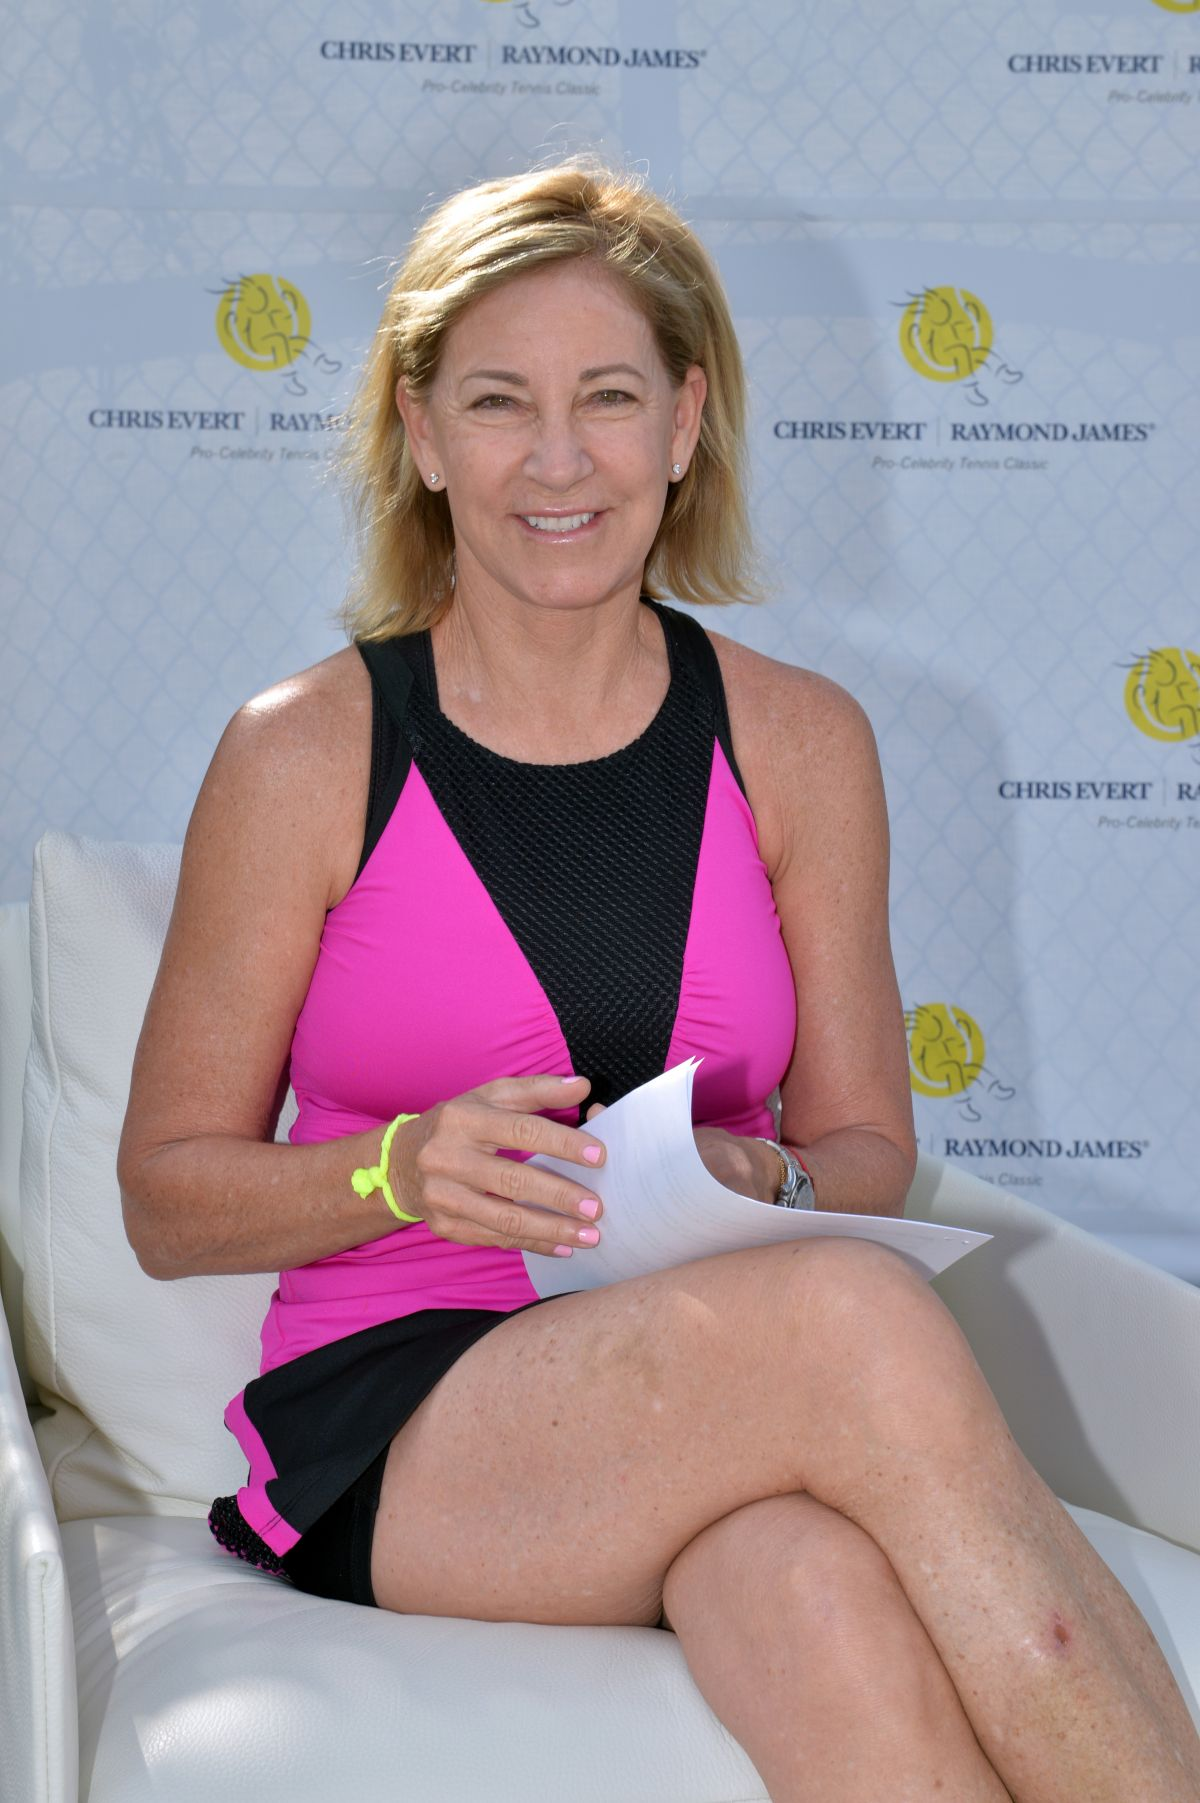 CHRIS EVERT at 27th Annual Chris Evert/Raymond James Pro-celebrity Tennis Classic Media Day at Boca Raton 11/18/2016